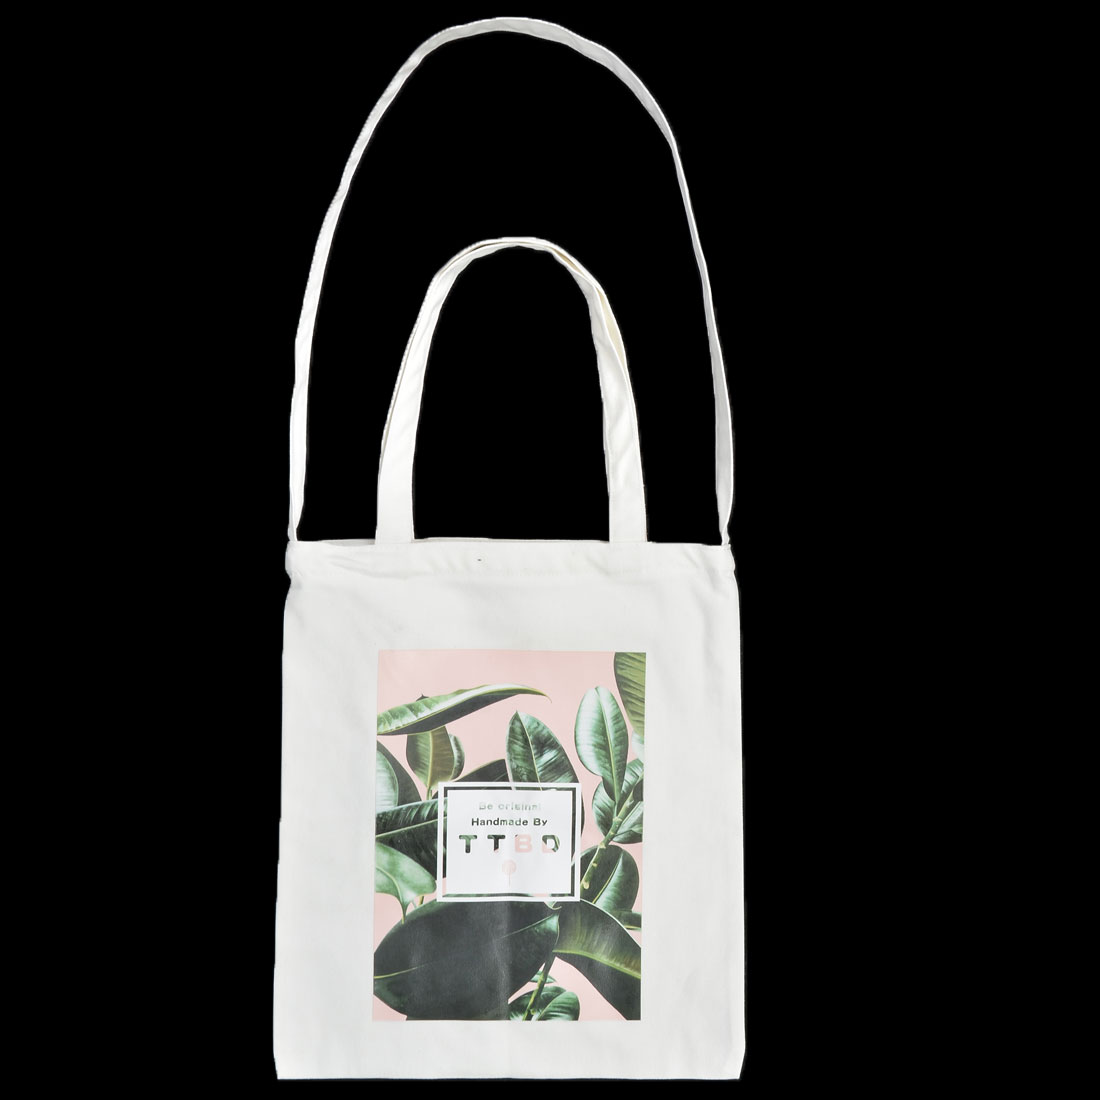 Travel Canvas Leaf Pattern Sundries Cosmetic Toothpaste Holder Tote Bag White - image 1 of 4